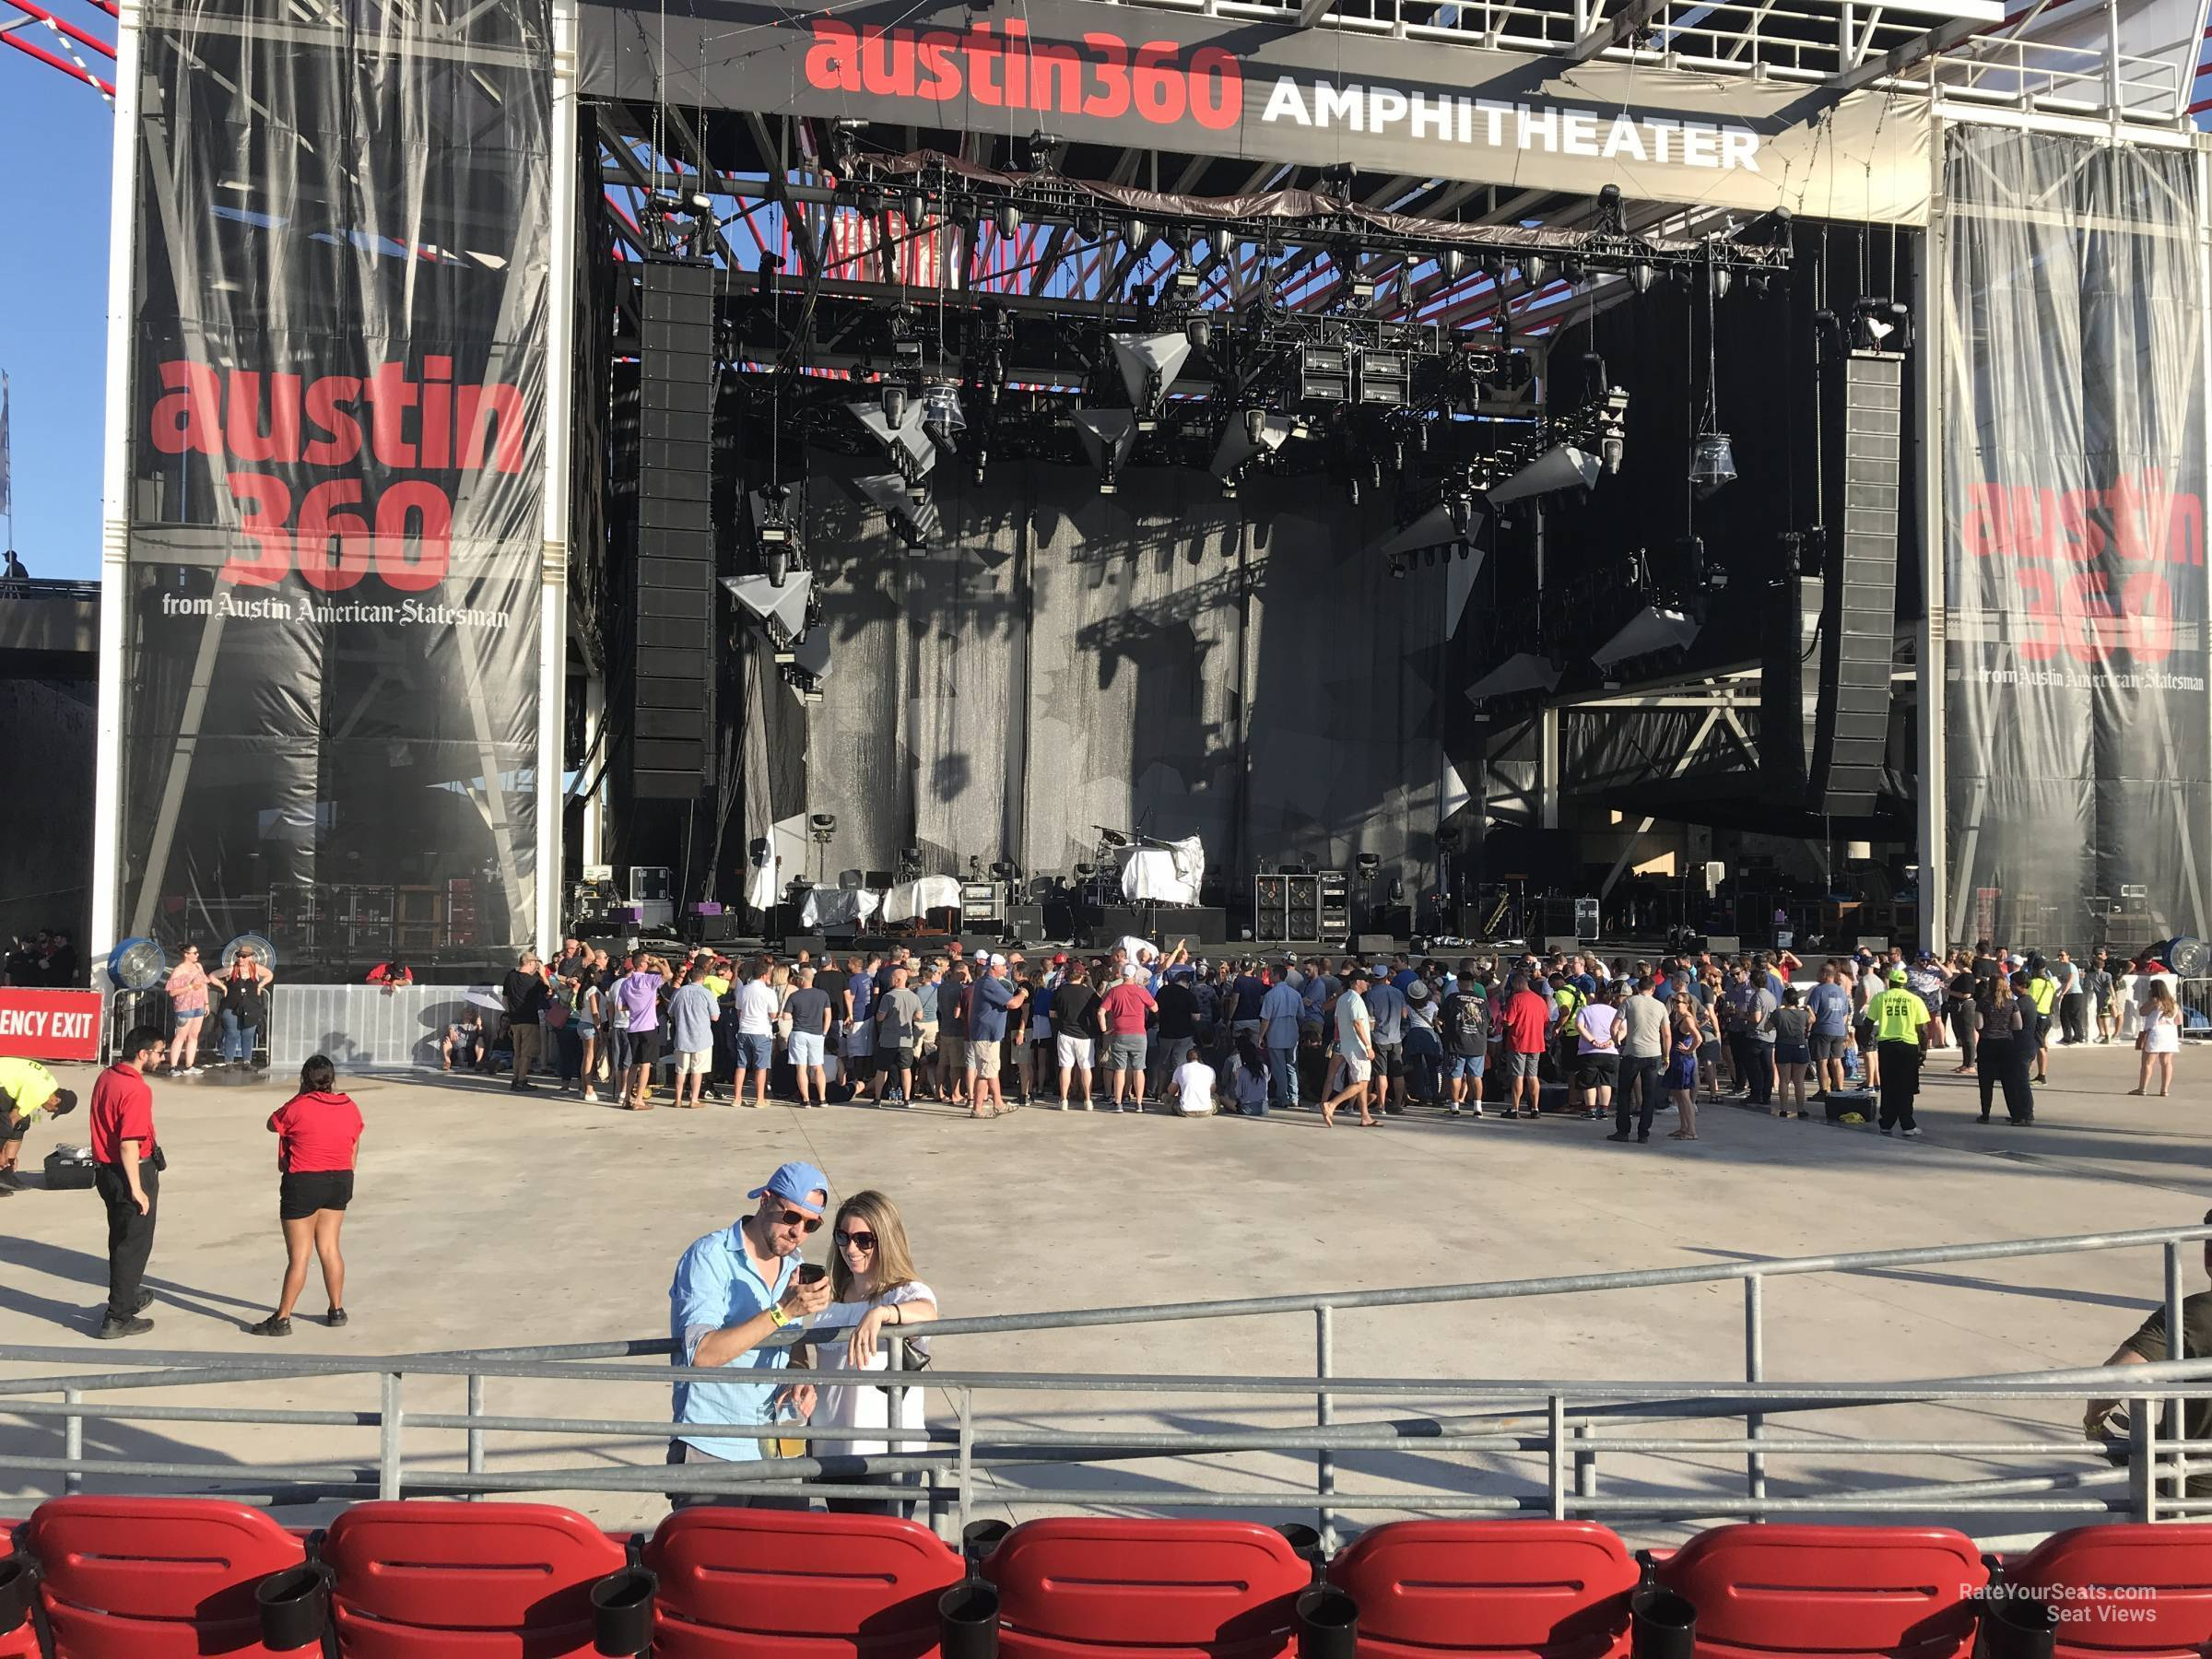 Austin360 Amphitheater Seating Chart With Rows